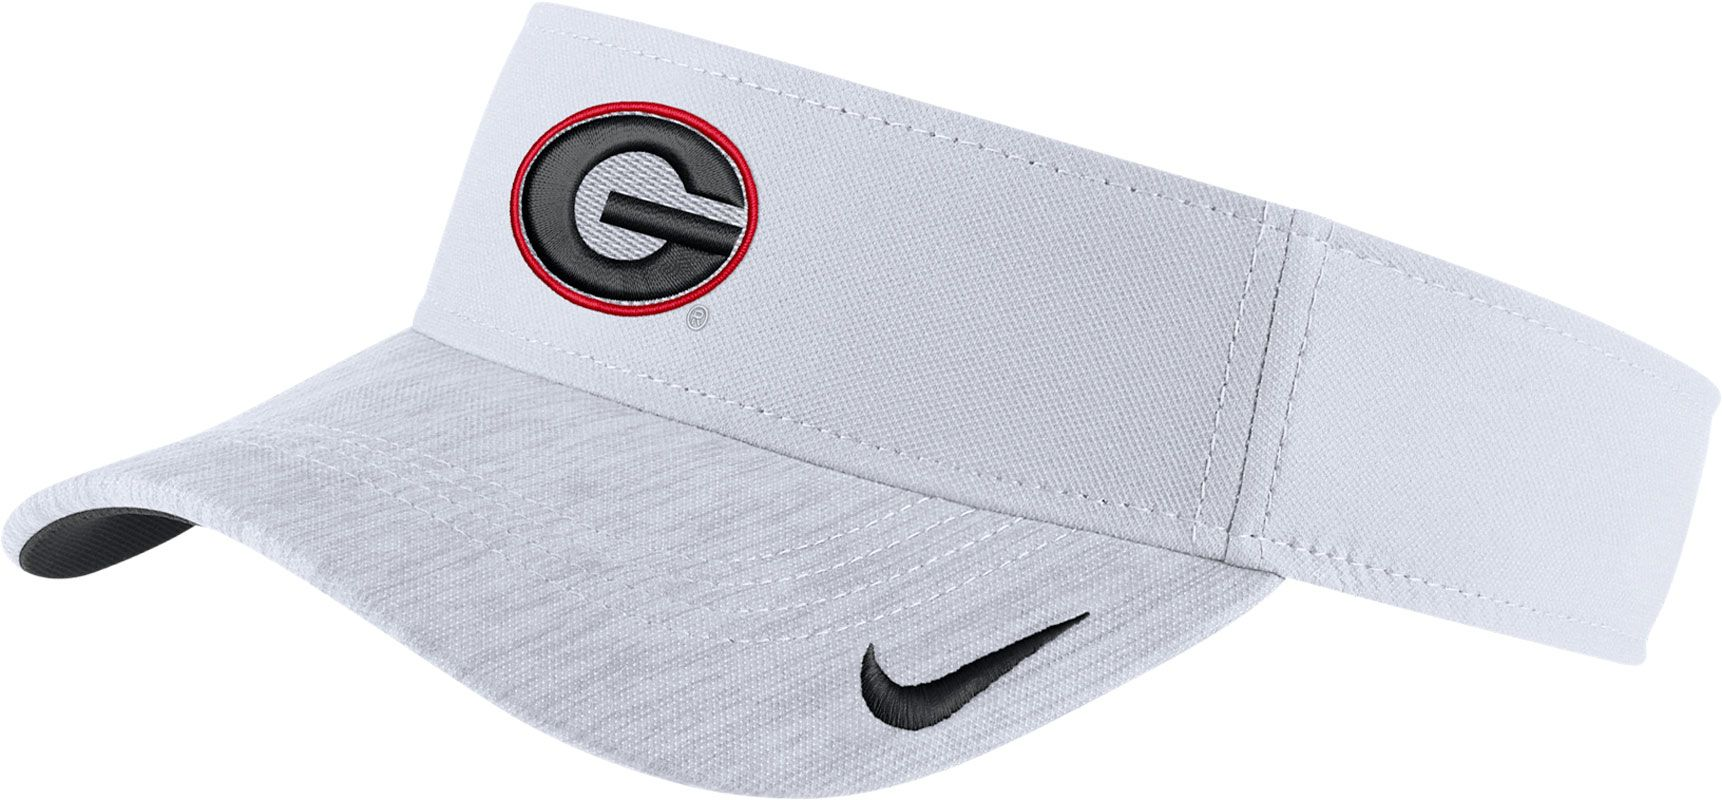 95c1a618223b3 ... best authentic 54f52 09952 Nike Mens Georgia Bulldogs White Aerobill  Football Sideline Visor ...